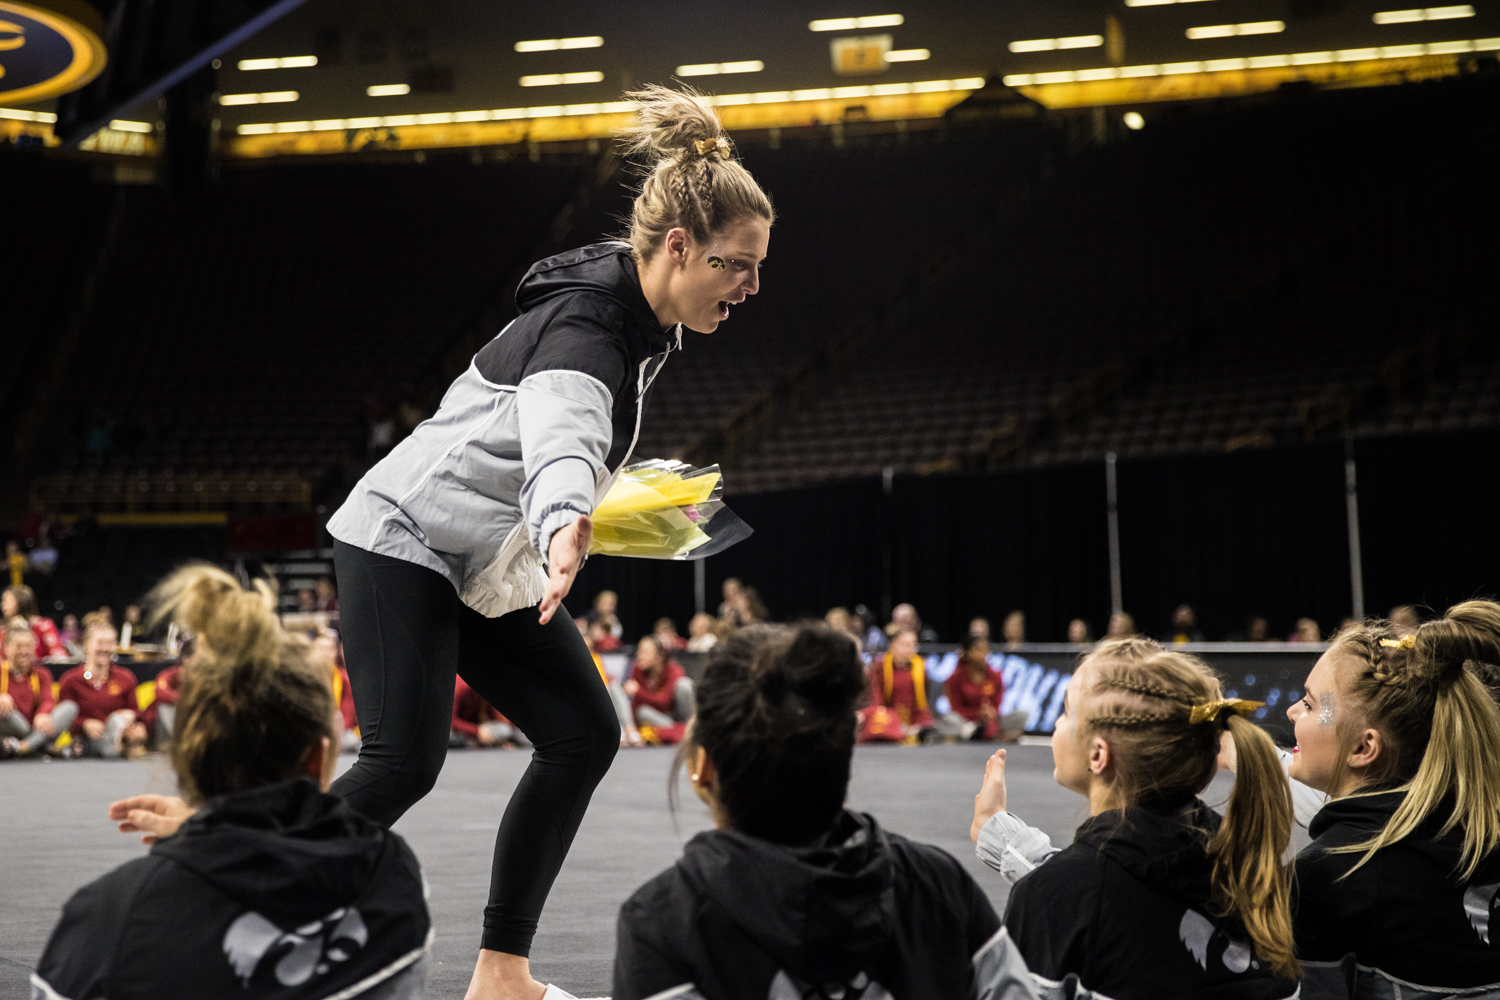 Iowa%27s+Sydney+Hogan+high-fives+her+teammates+after+a+women%27s+gymnastics+meet+between+Iowa+and+Iowa+State+at+Carver-Hawkeye+Arena+on+Friday%2C+March+1%2C+2019.+The+Hawkeyes%2C+celebrating+senior+night%2C+fell+to+the+Cyclones%2C+196.275-196.250.